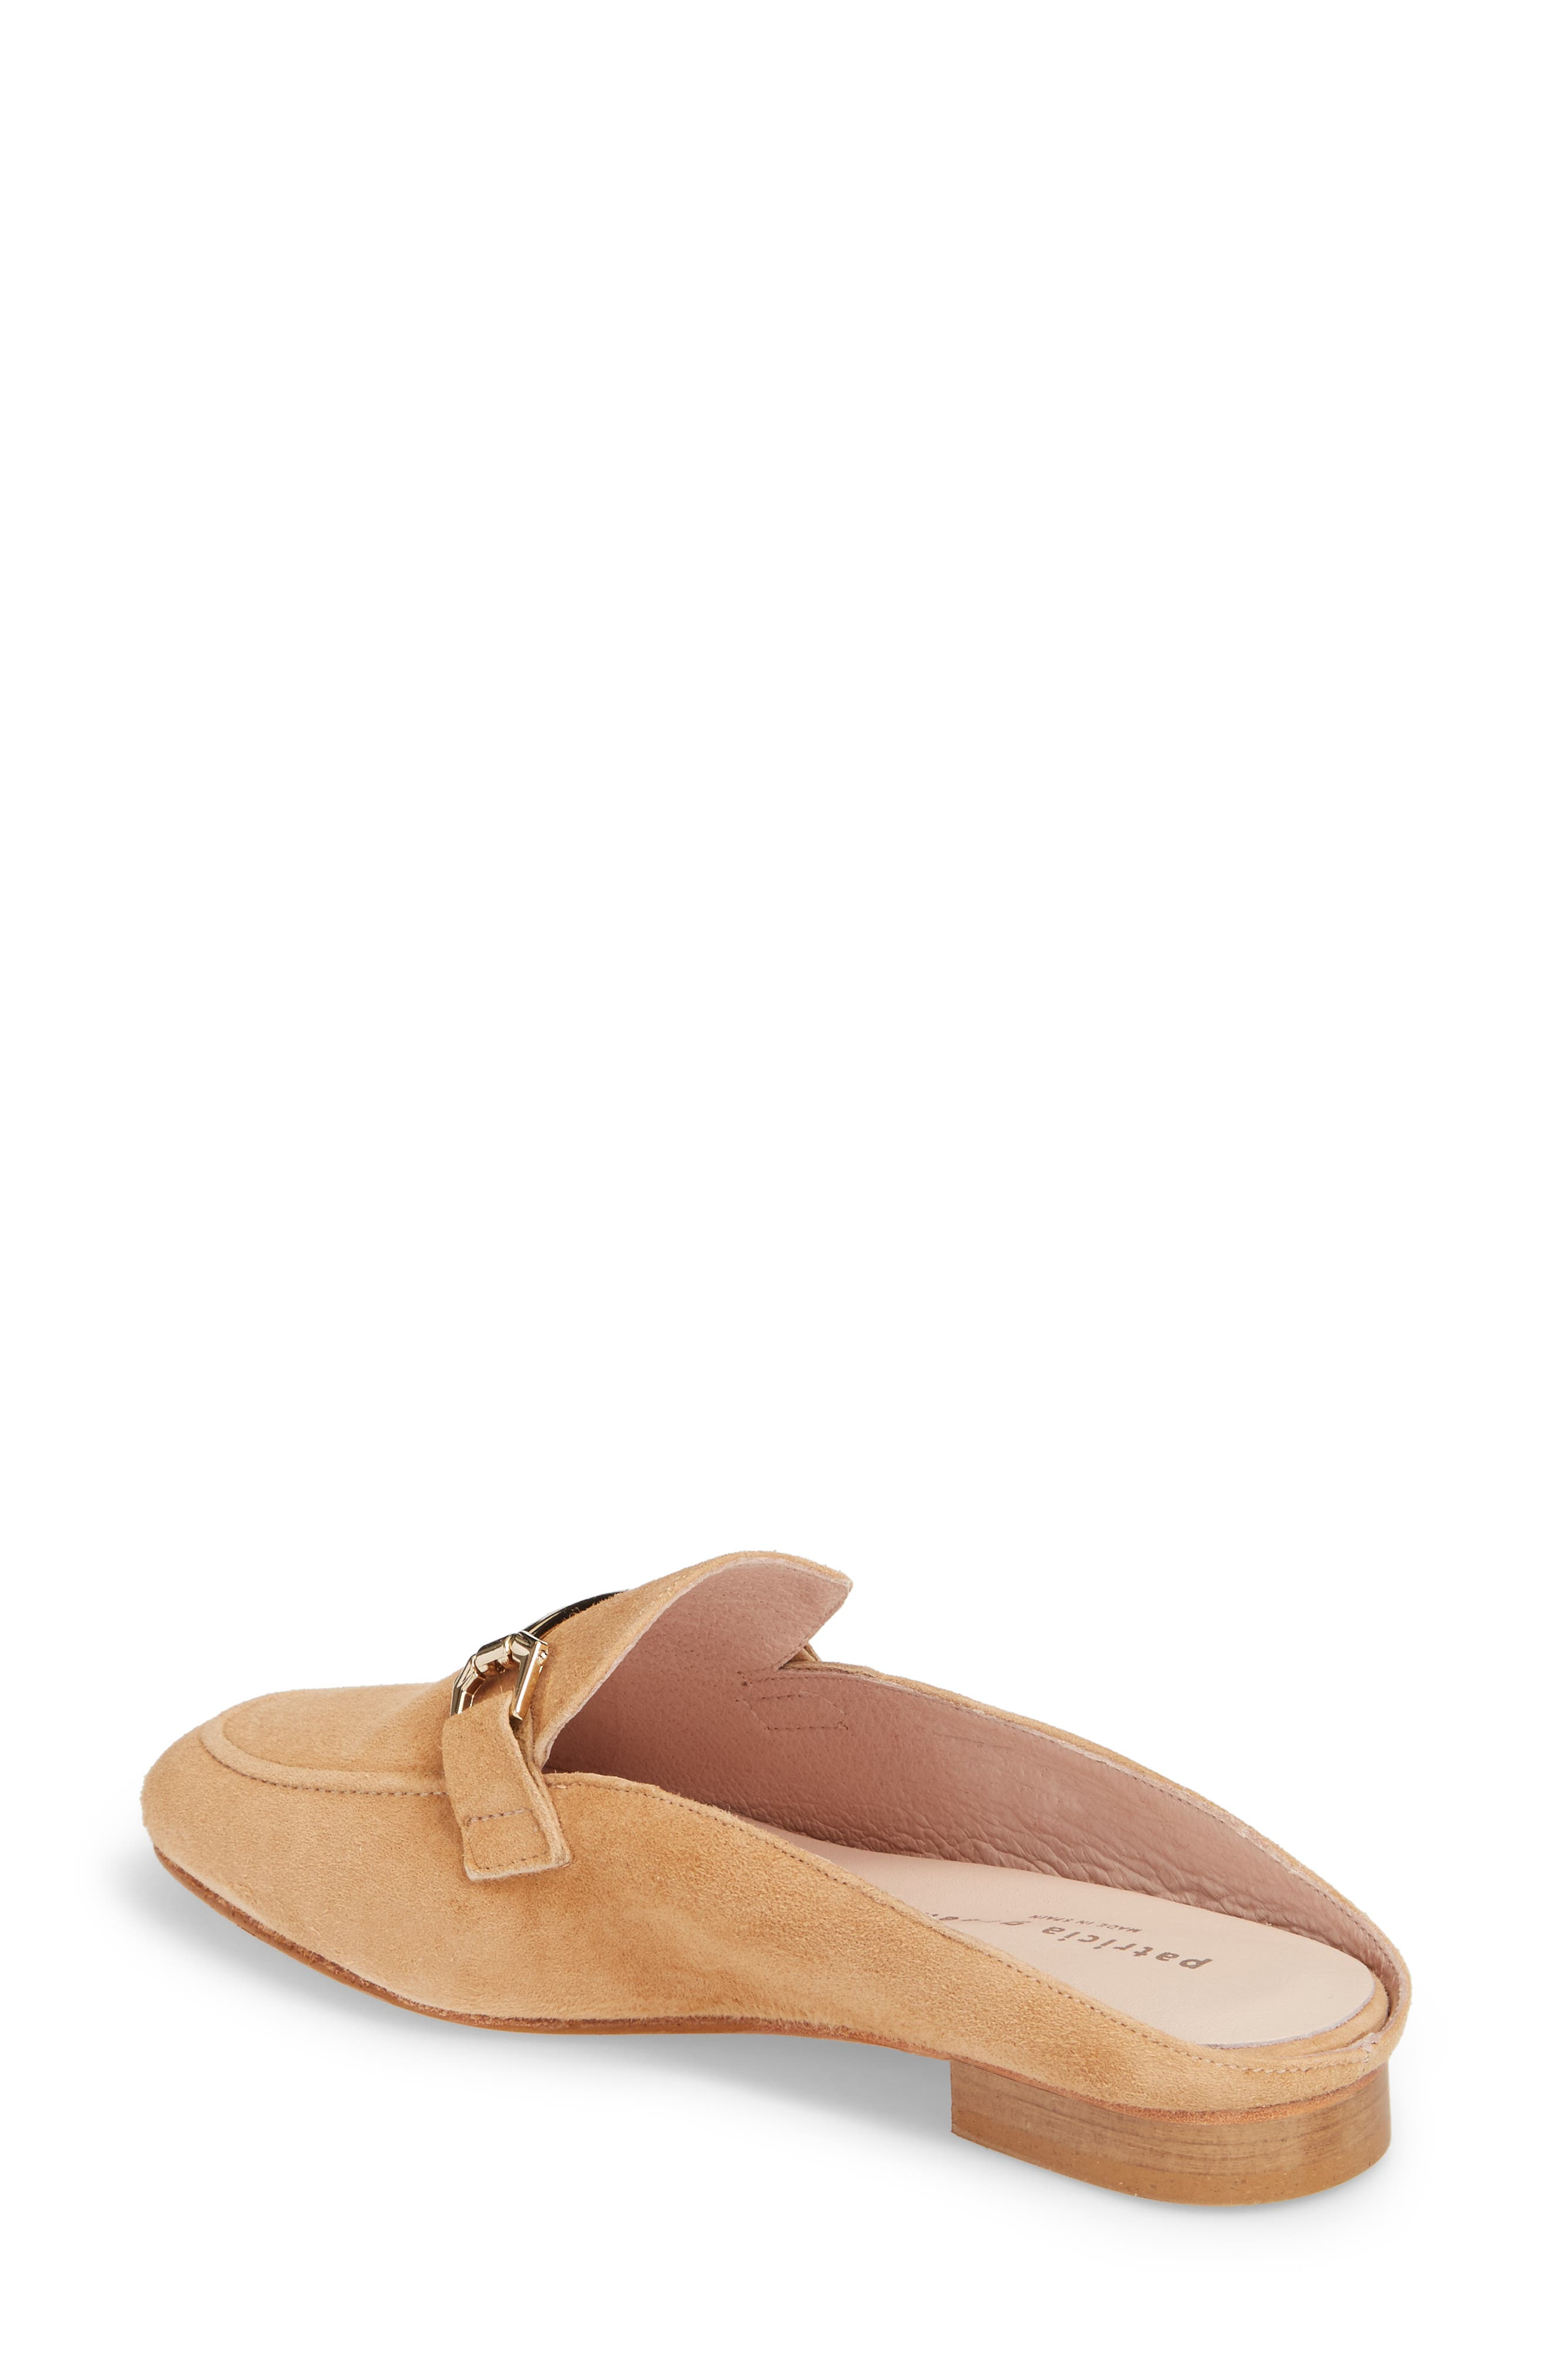 Sorrento Too Mule,                             Alternate thumbnail 2, color,                             Camel Suede